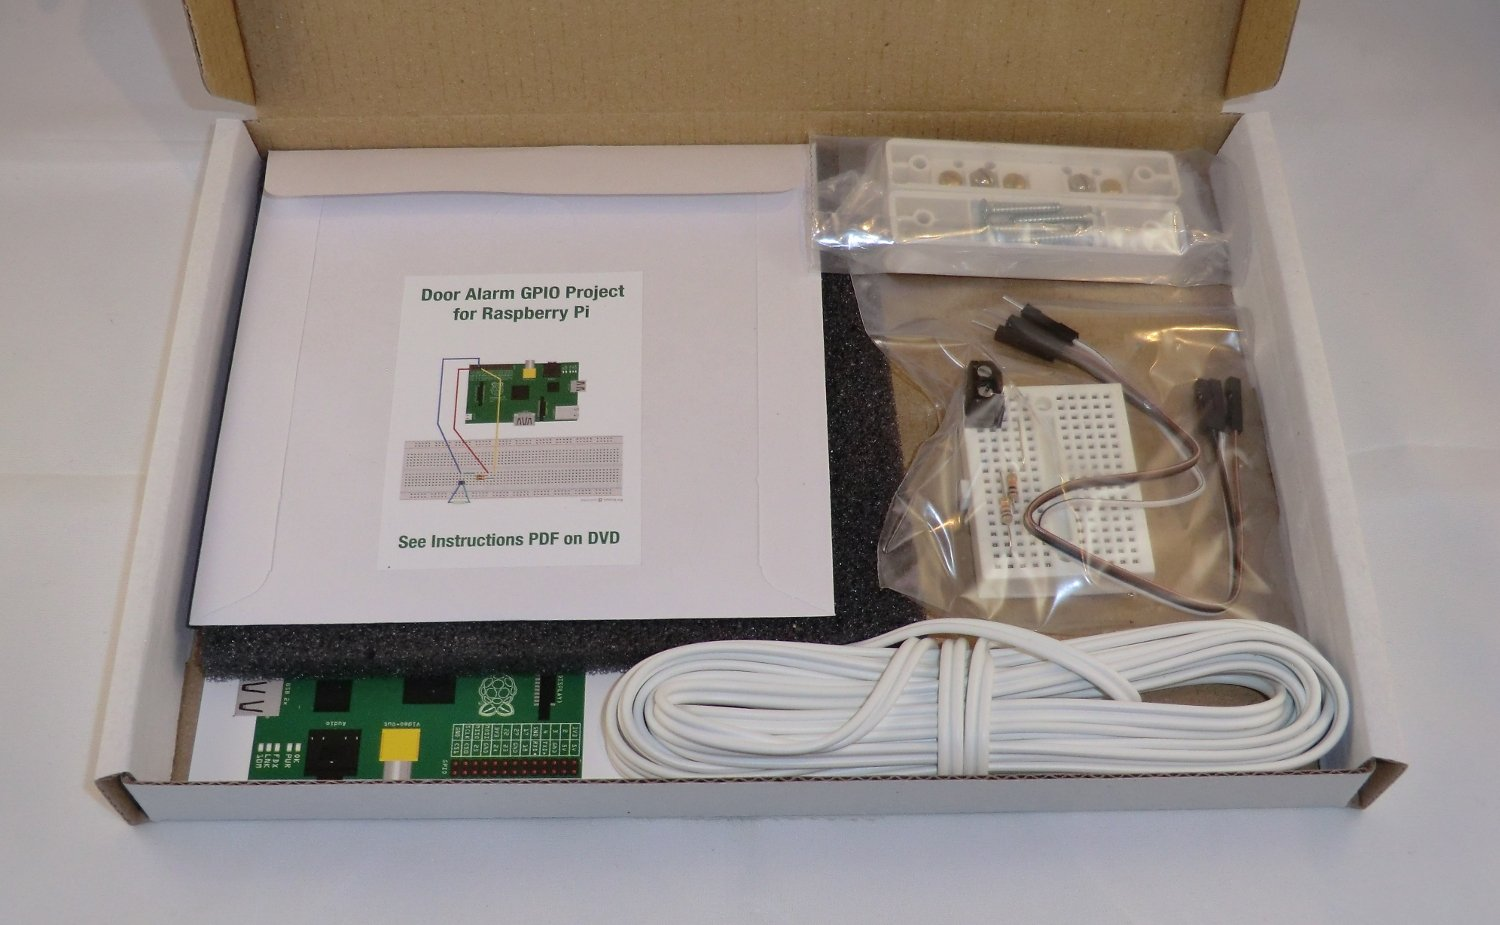 Door Window Alarm Gpio Project Kit For Raspberry Pi Wiring Multiple Reed Switches Includes Breadboard Magnetic Switch Sensor Three Metres Of Bell Wire Resistors Connection Wires To Also Easy Follow Pdf